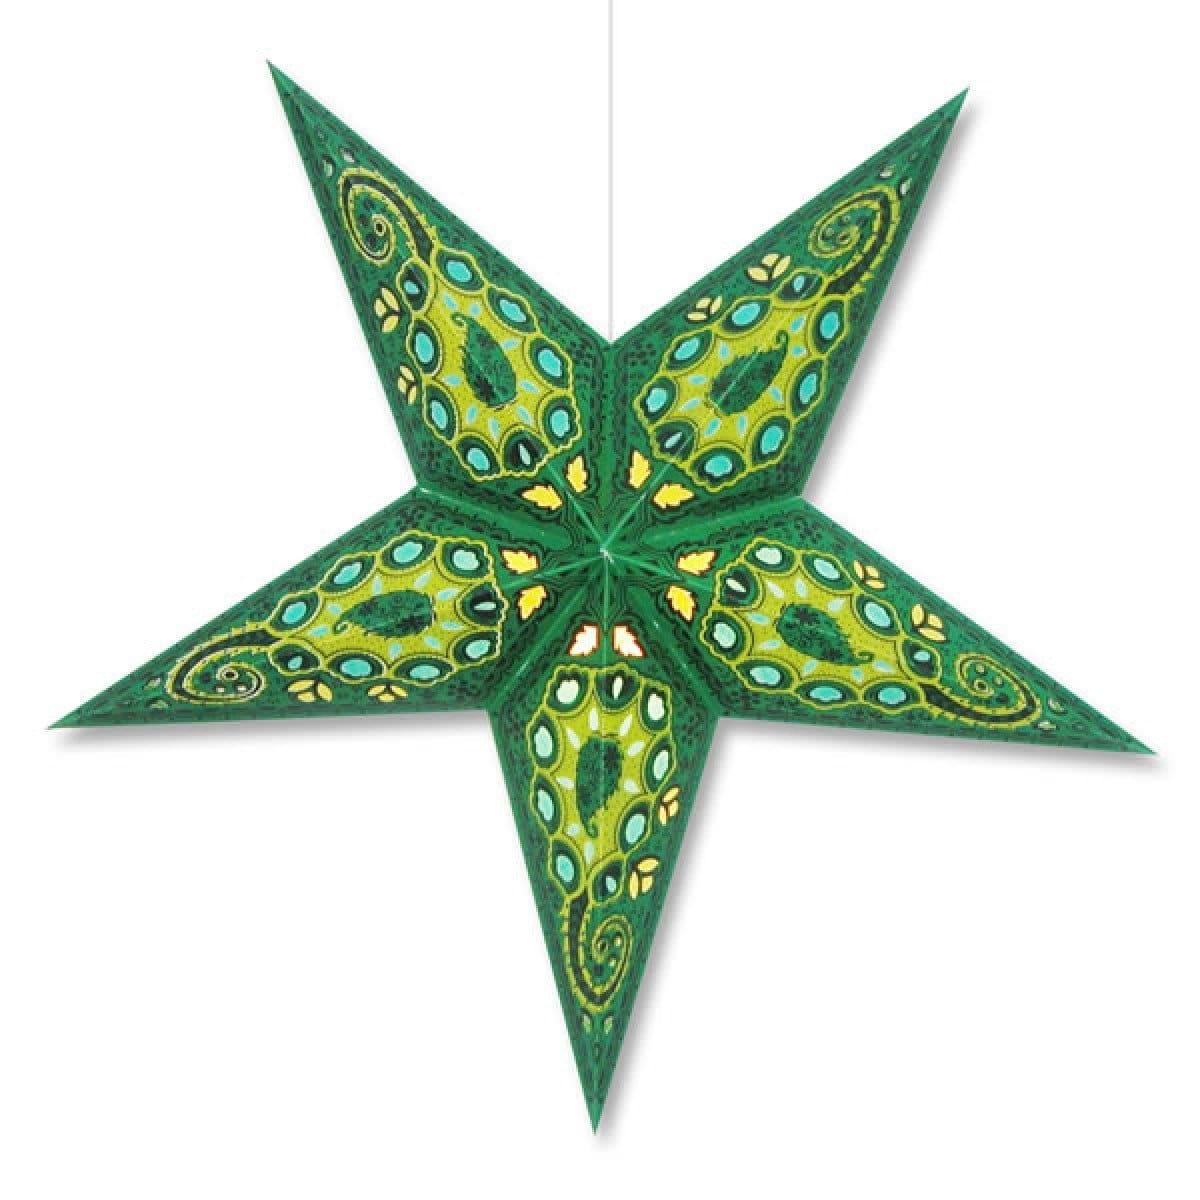 Nebula Hanging Star Lantern - Green Whirled Planet Home Decor